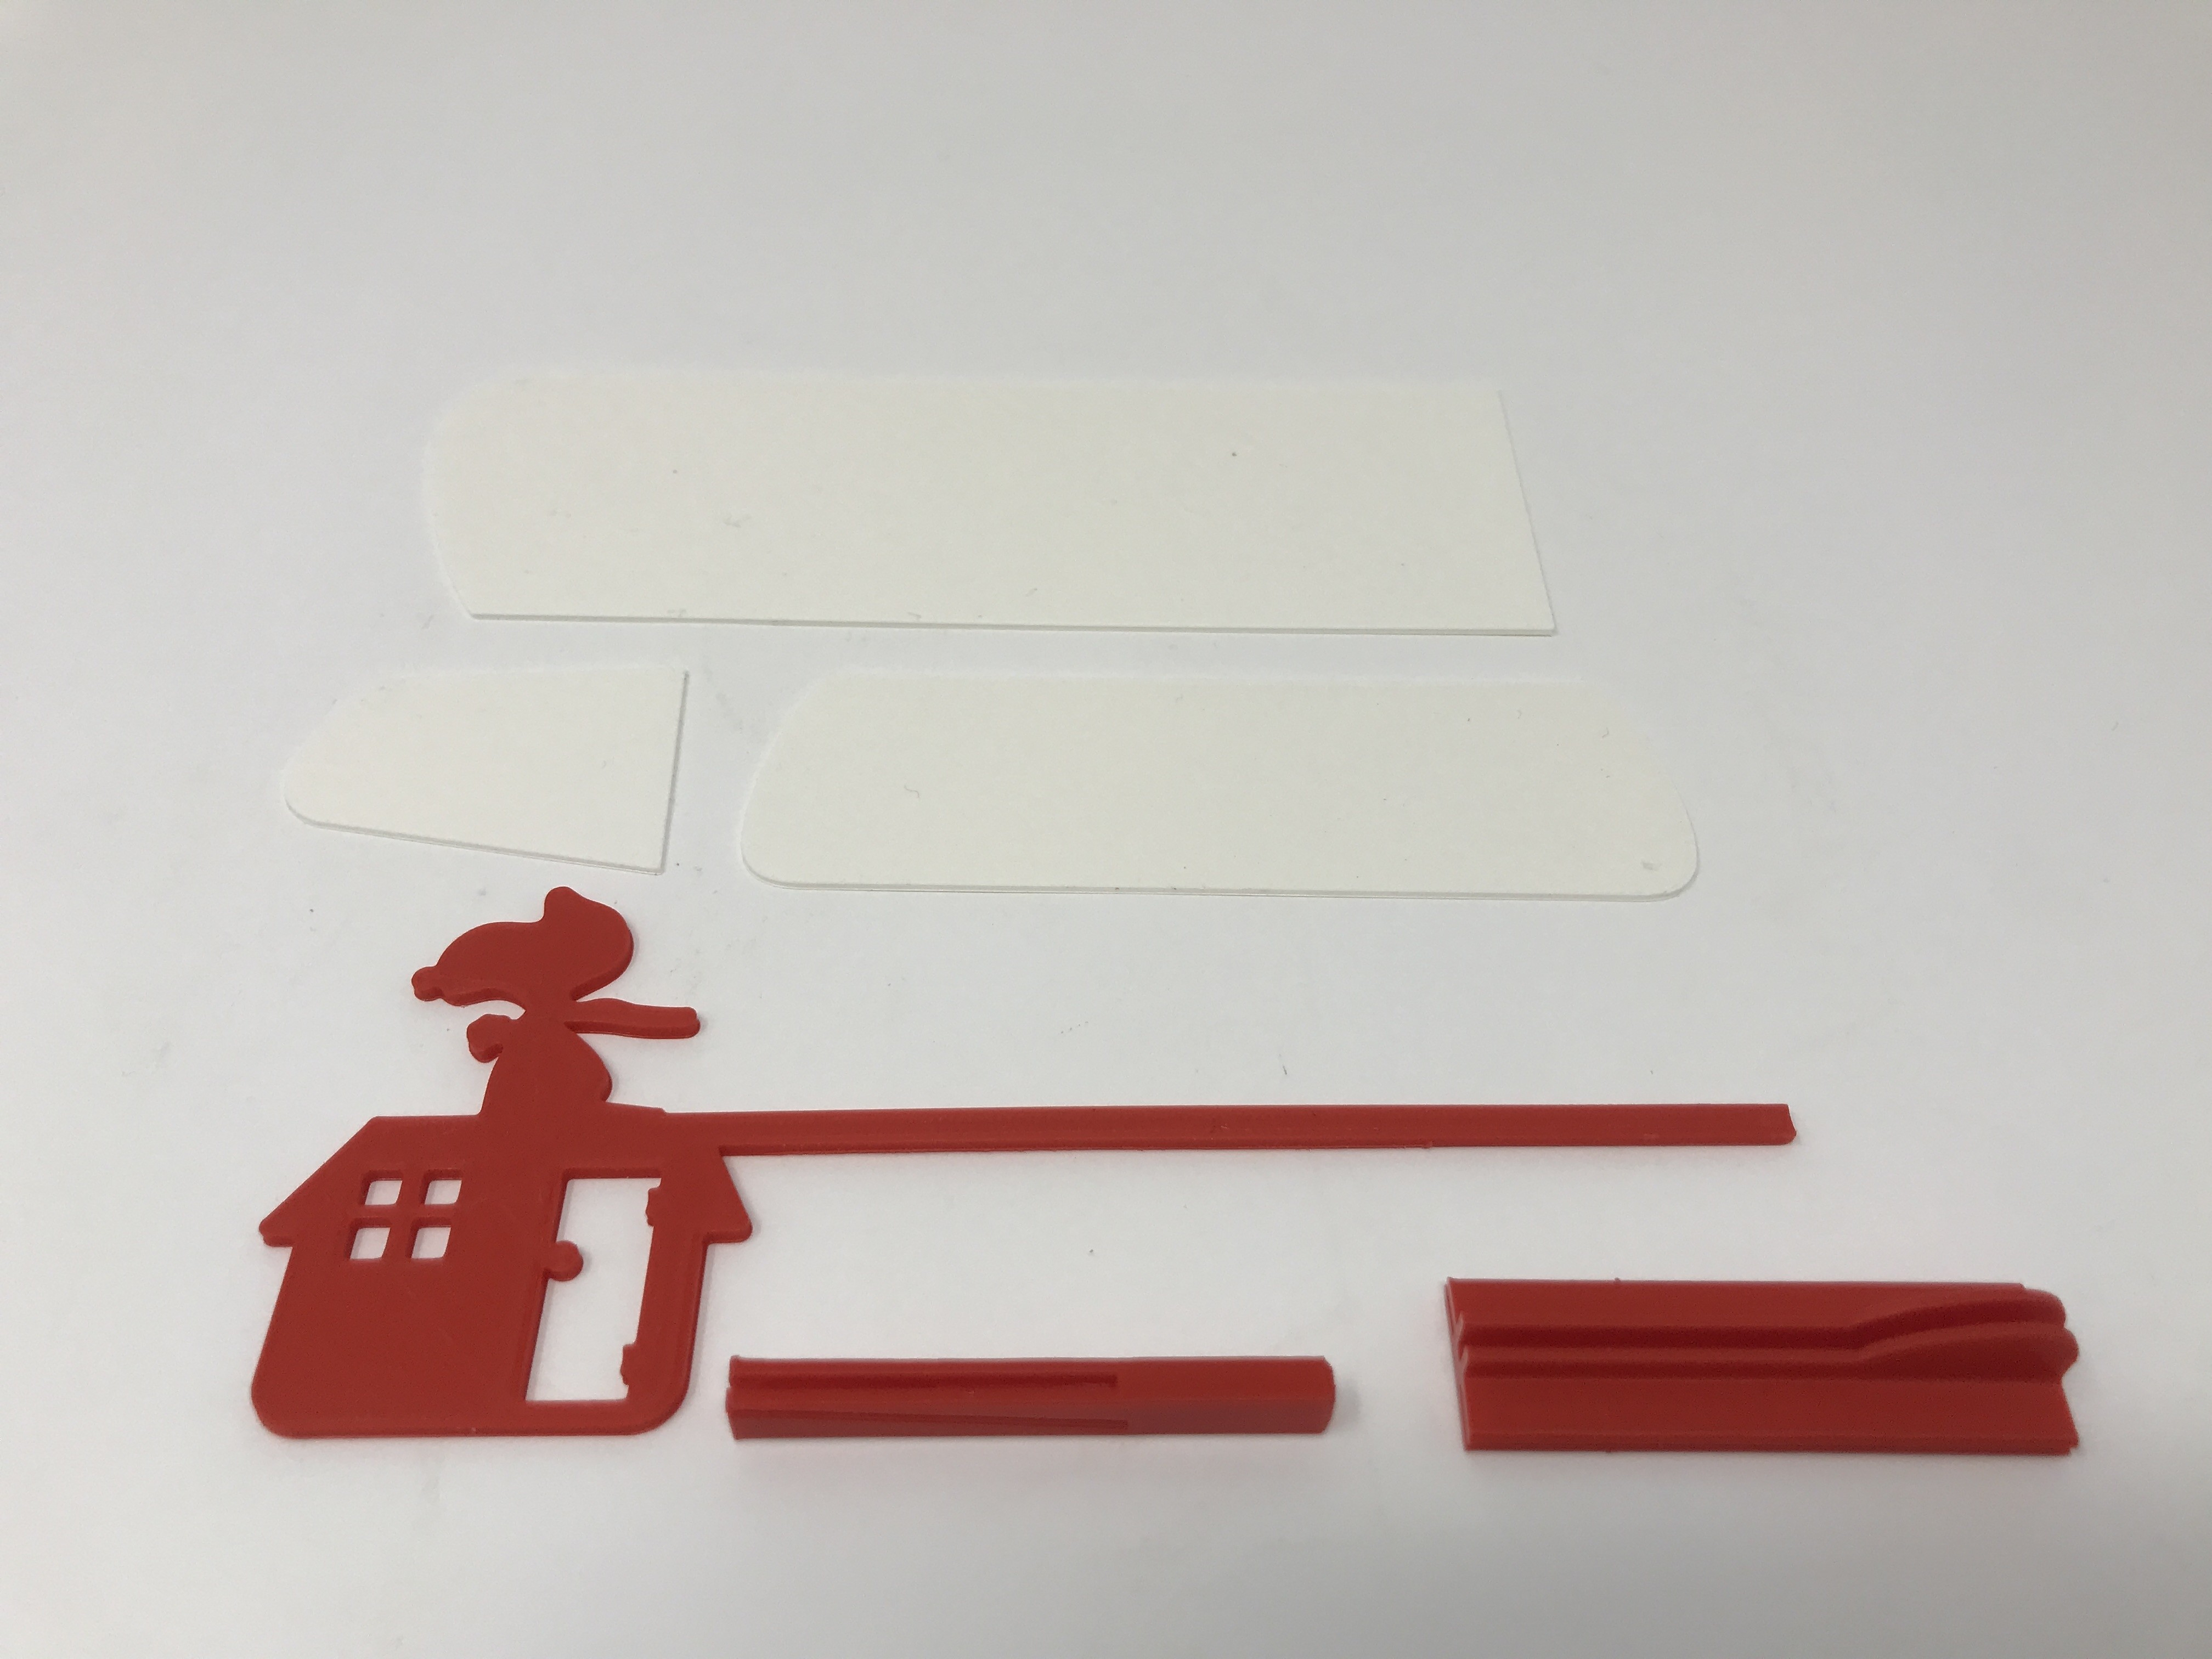 IMG_1630.jpg Download free STL file Red Baron Hand Launched Glider • 3D printer template, gzumwalt